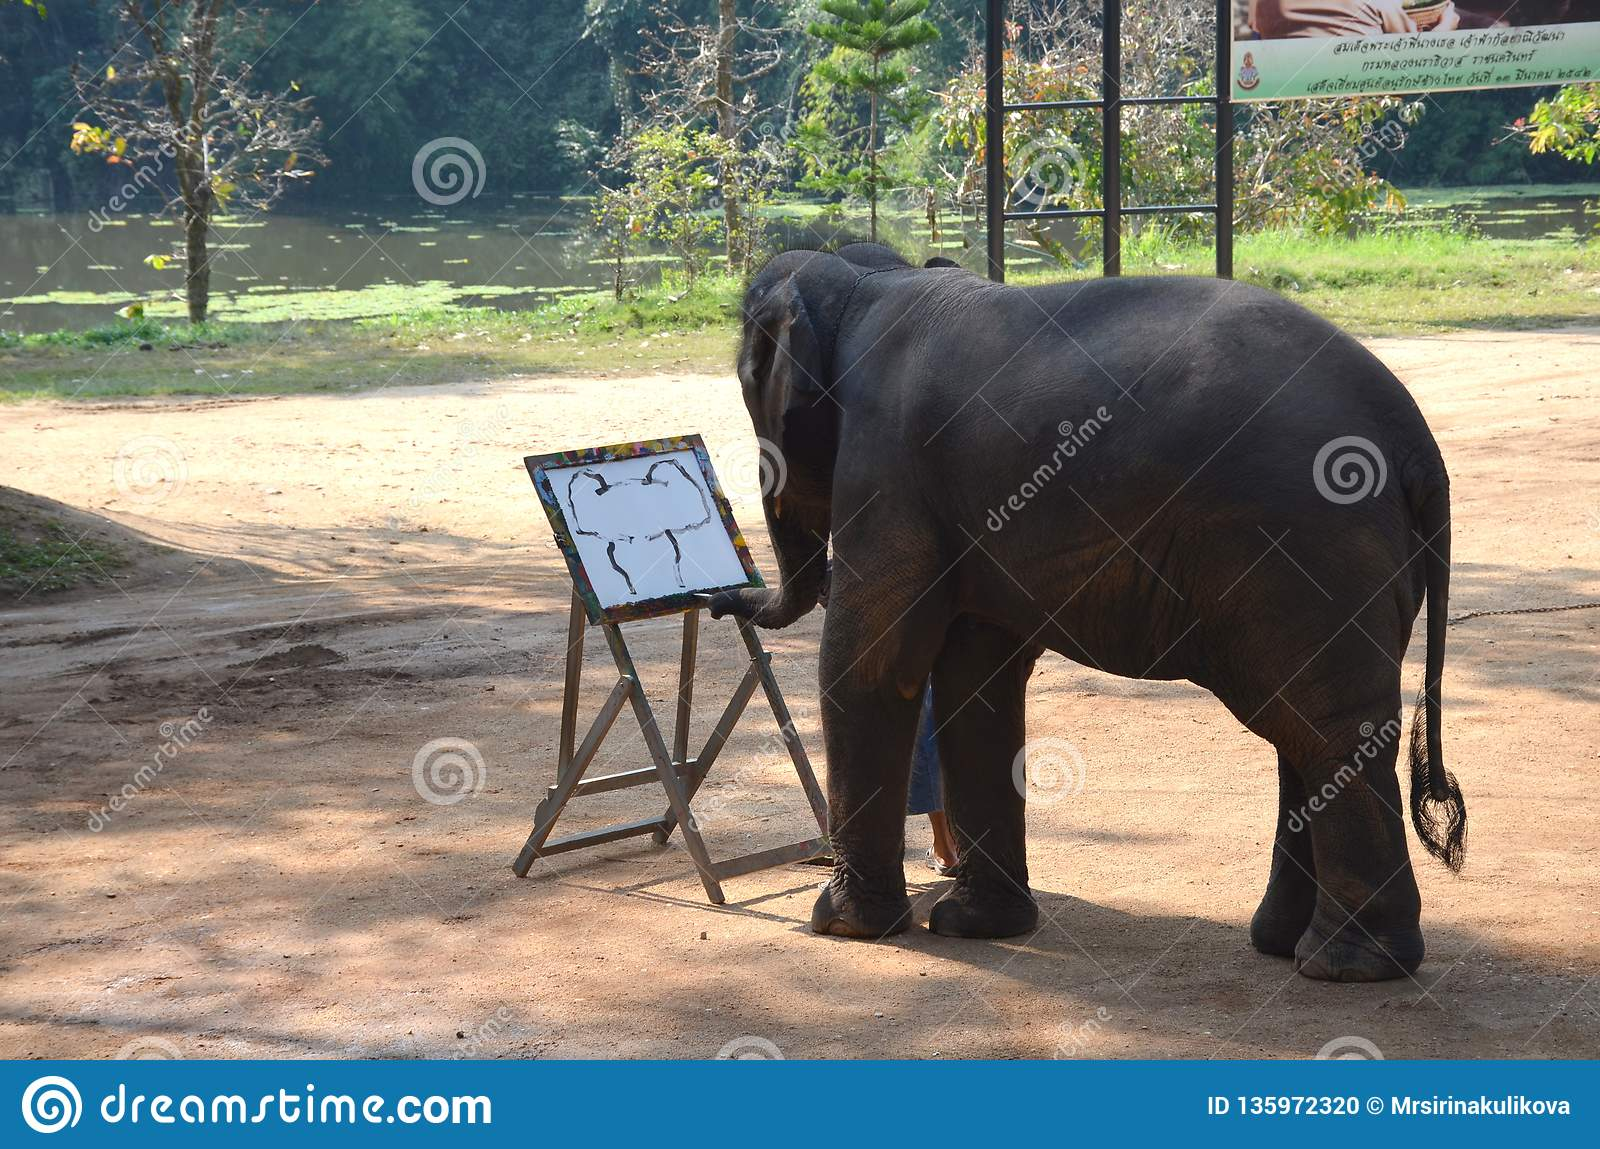 Chiang Mai, Thailand - December 16, 2015: Daily show at the Thai Elephant Conservation Center in Lampang. The elephant draws